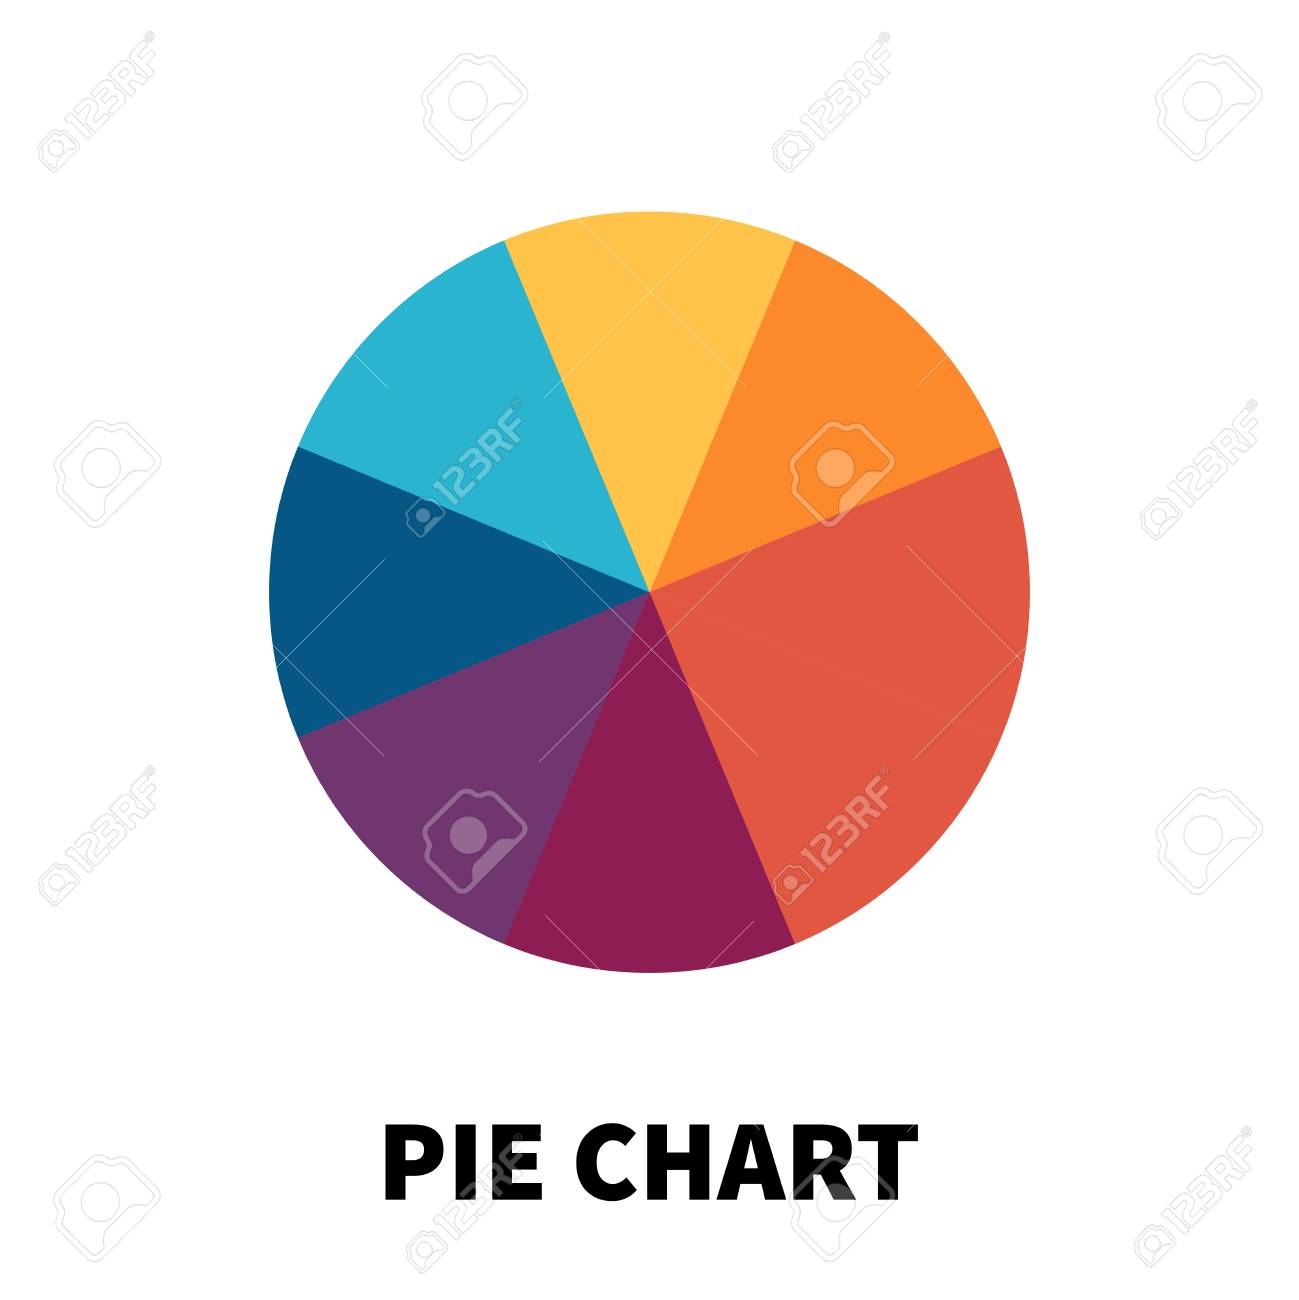 Pie chart icon or logo in modern flat style high quality black pie chart icon or logo in modern flat style high quality black pictogram for web ccuart Image collections